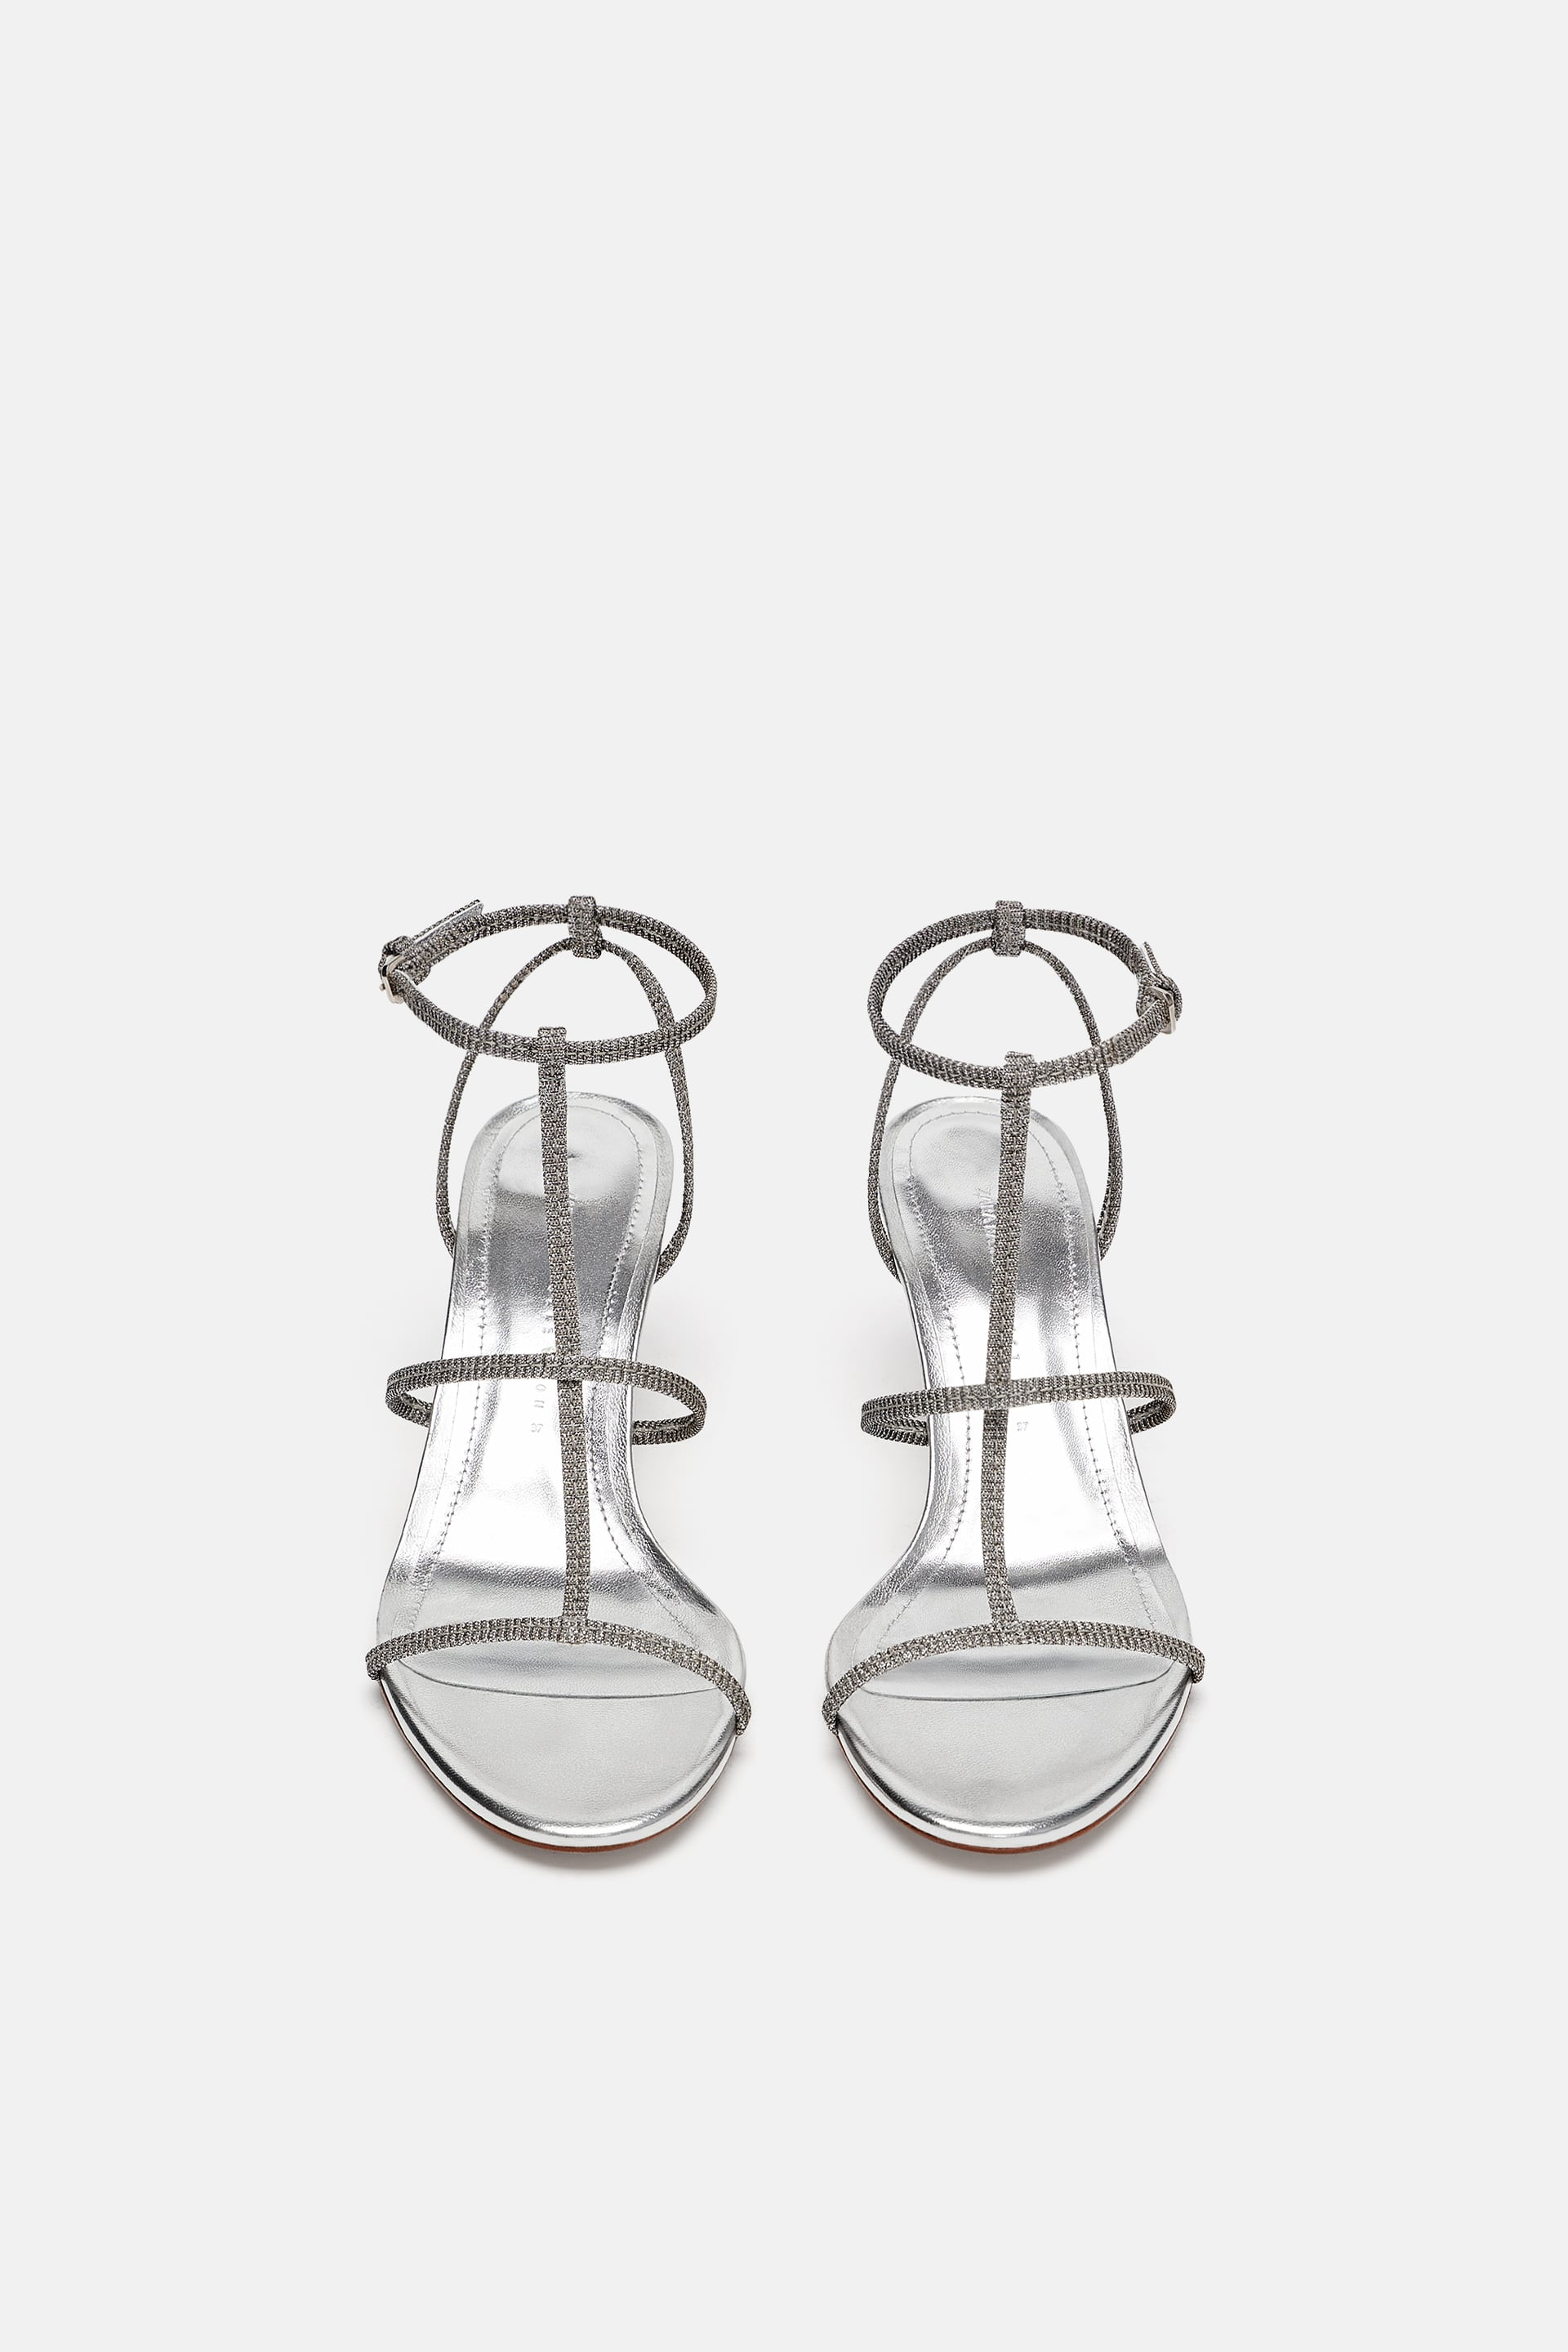 https://www.zara.com/us/en/heeled-sandal-with-laminated-straps-p16331301.html?v1=7259067&v2=107462